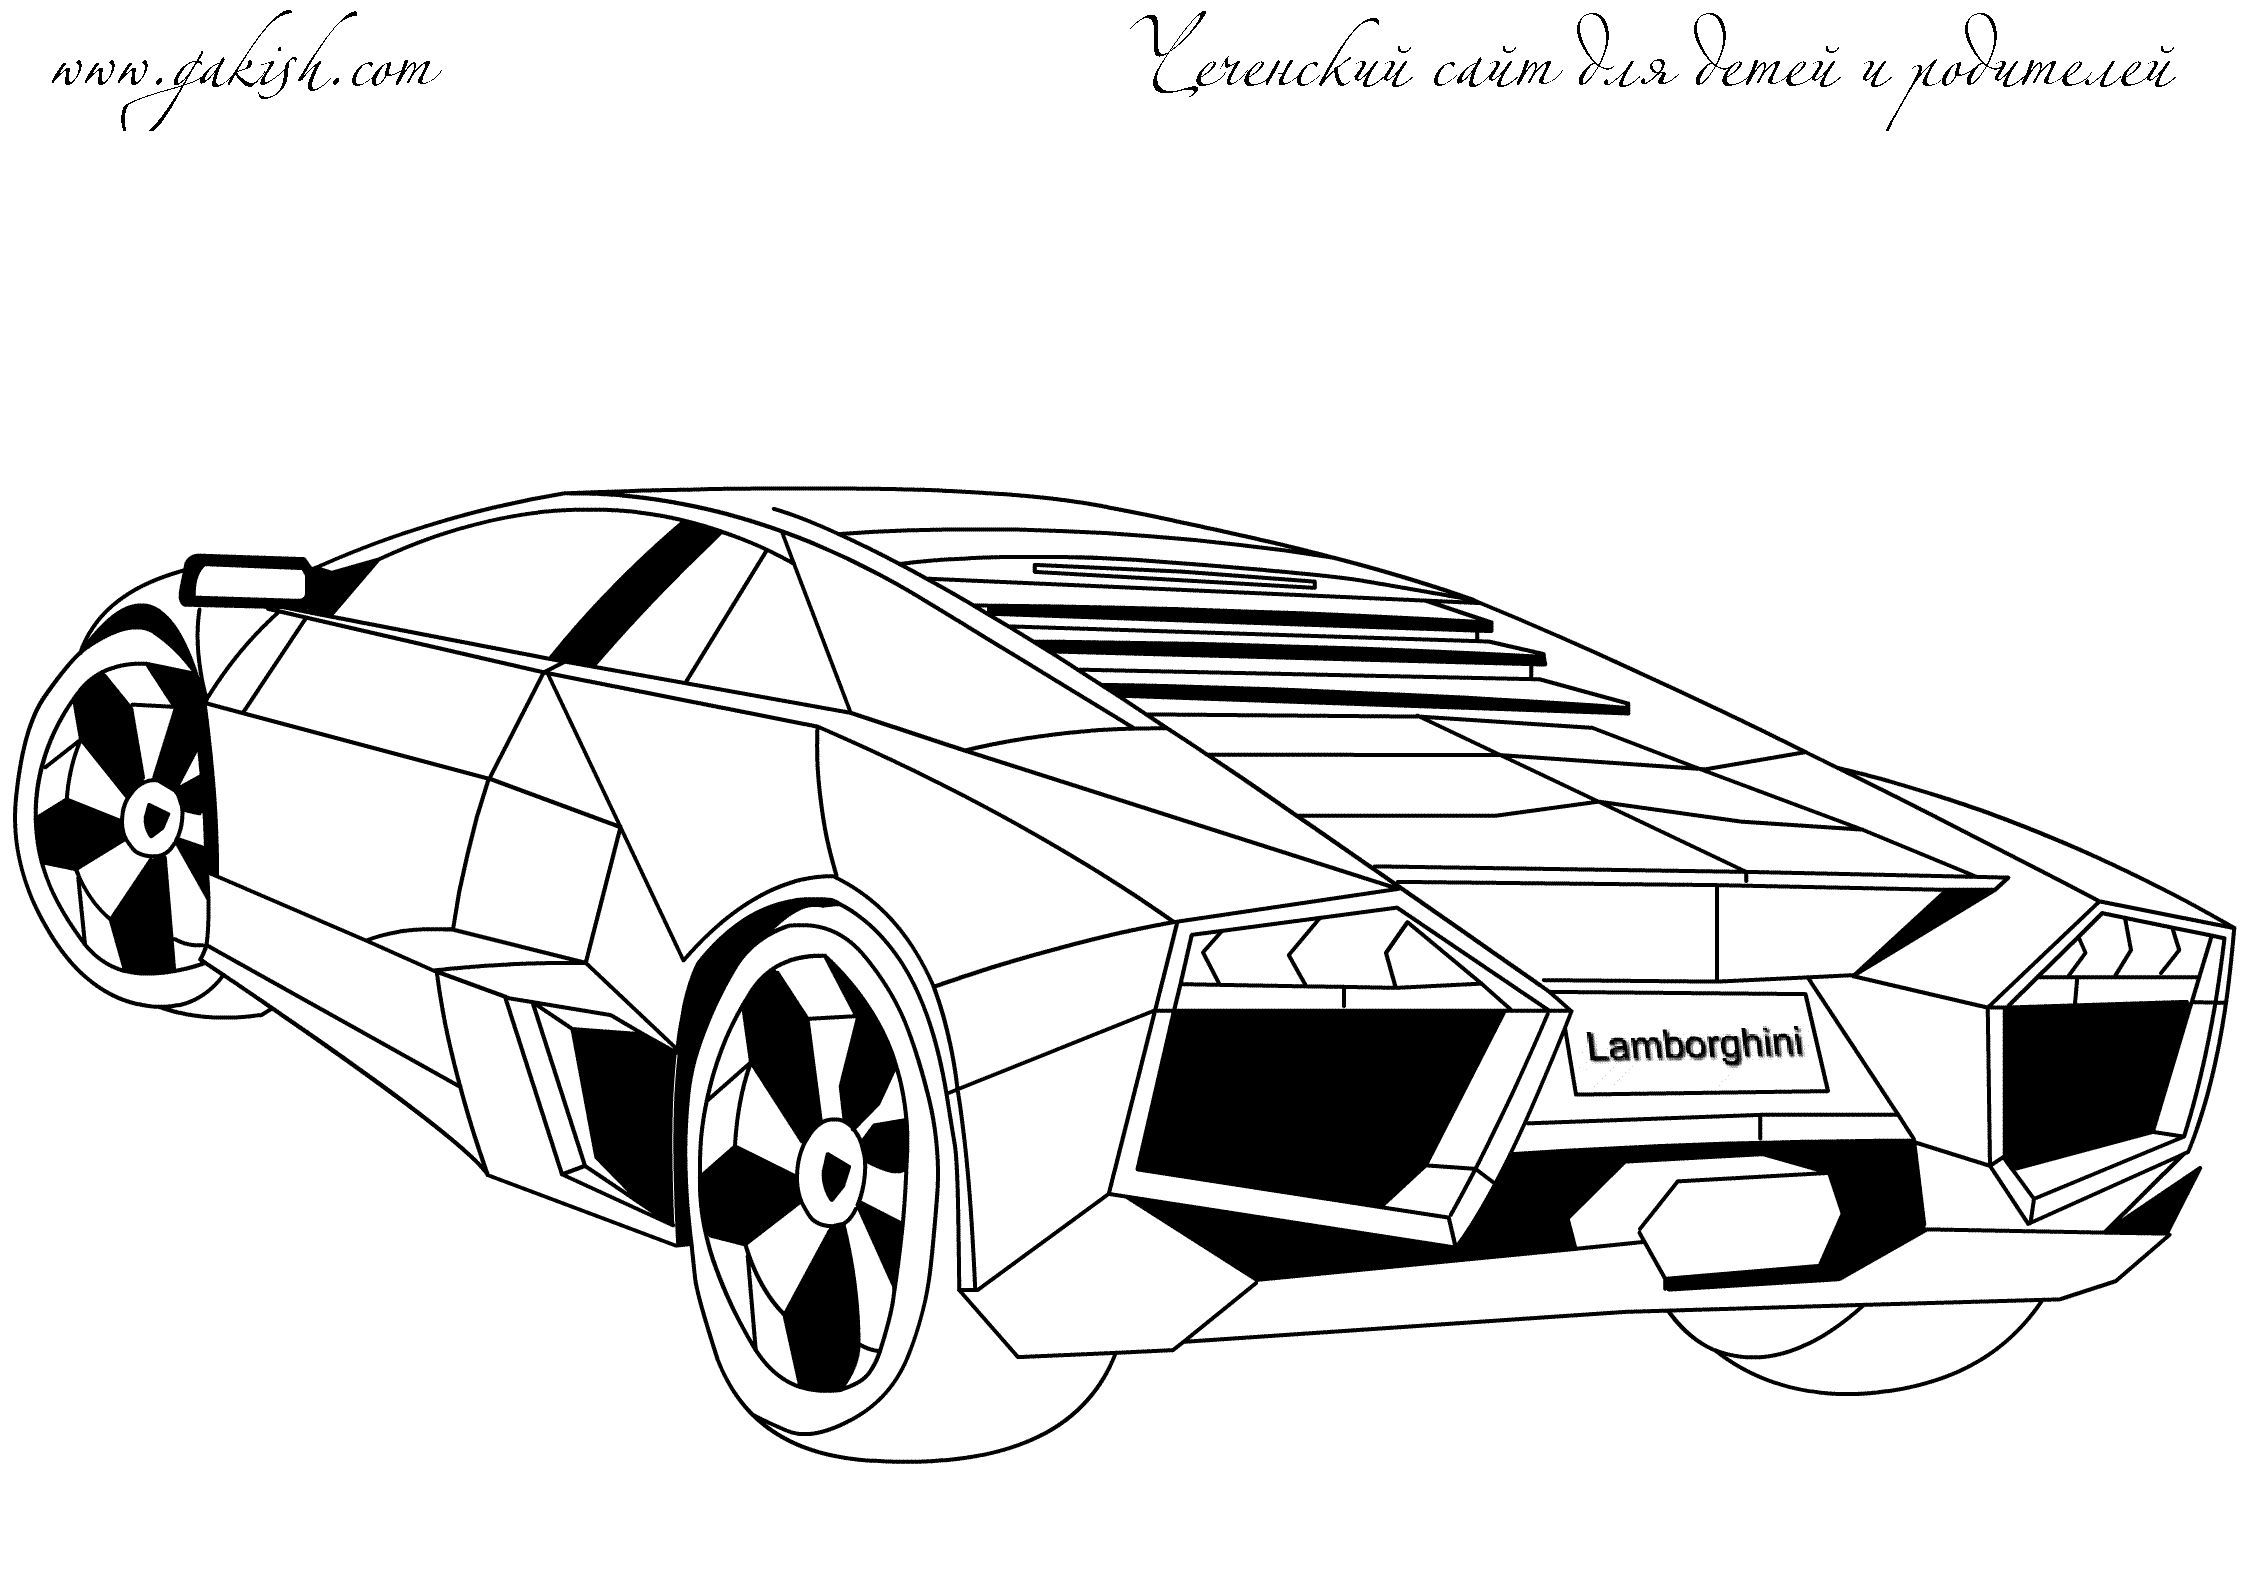 car picture to color car coloring pages best coloring pages for kids picture color car to